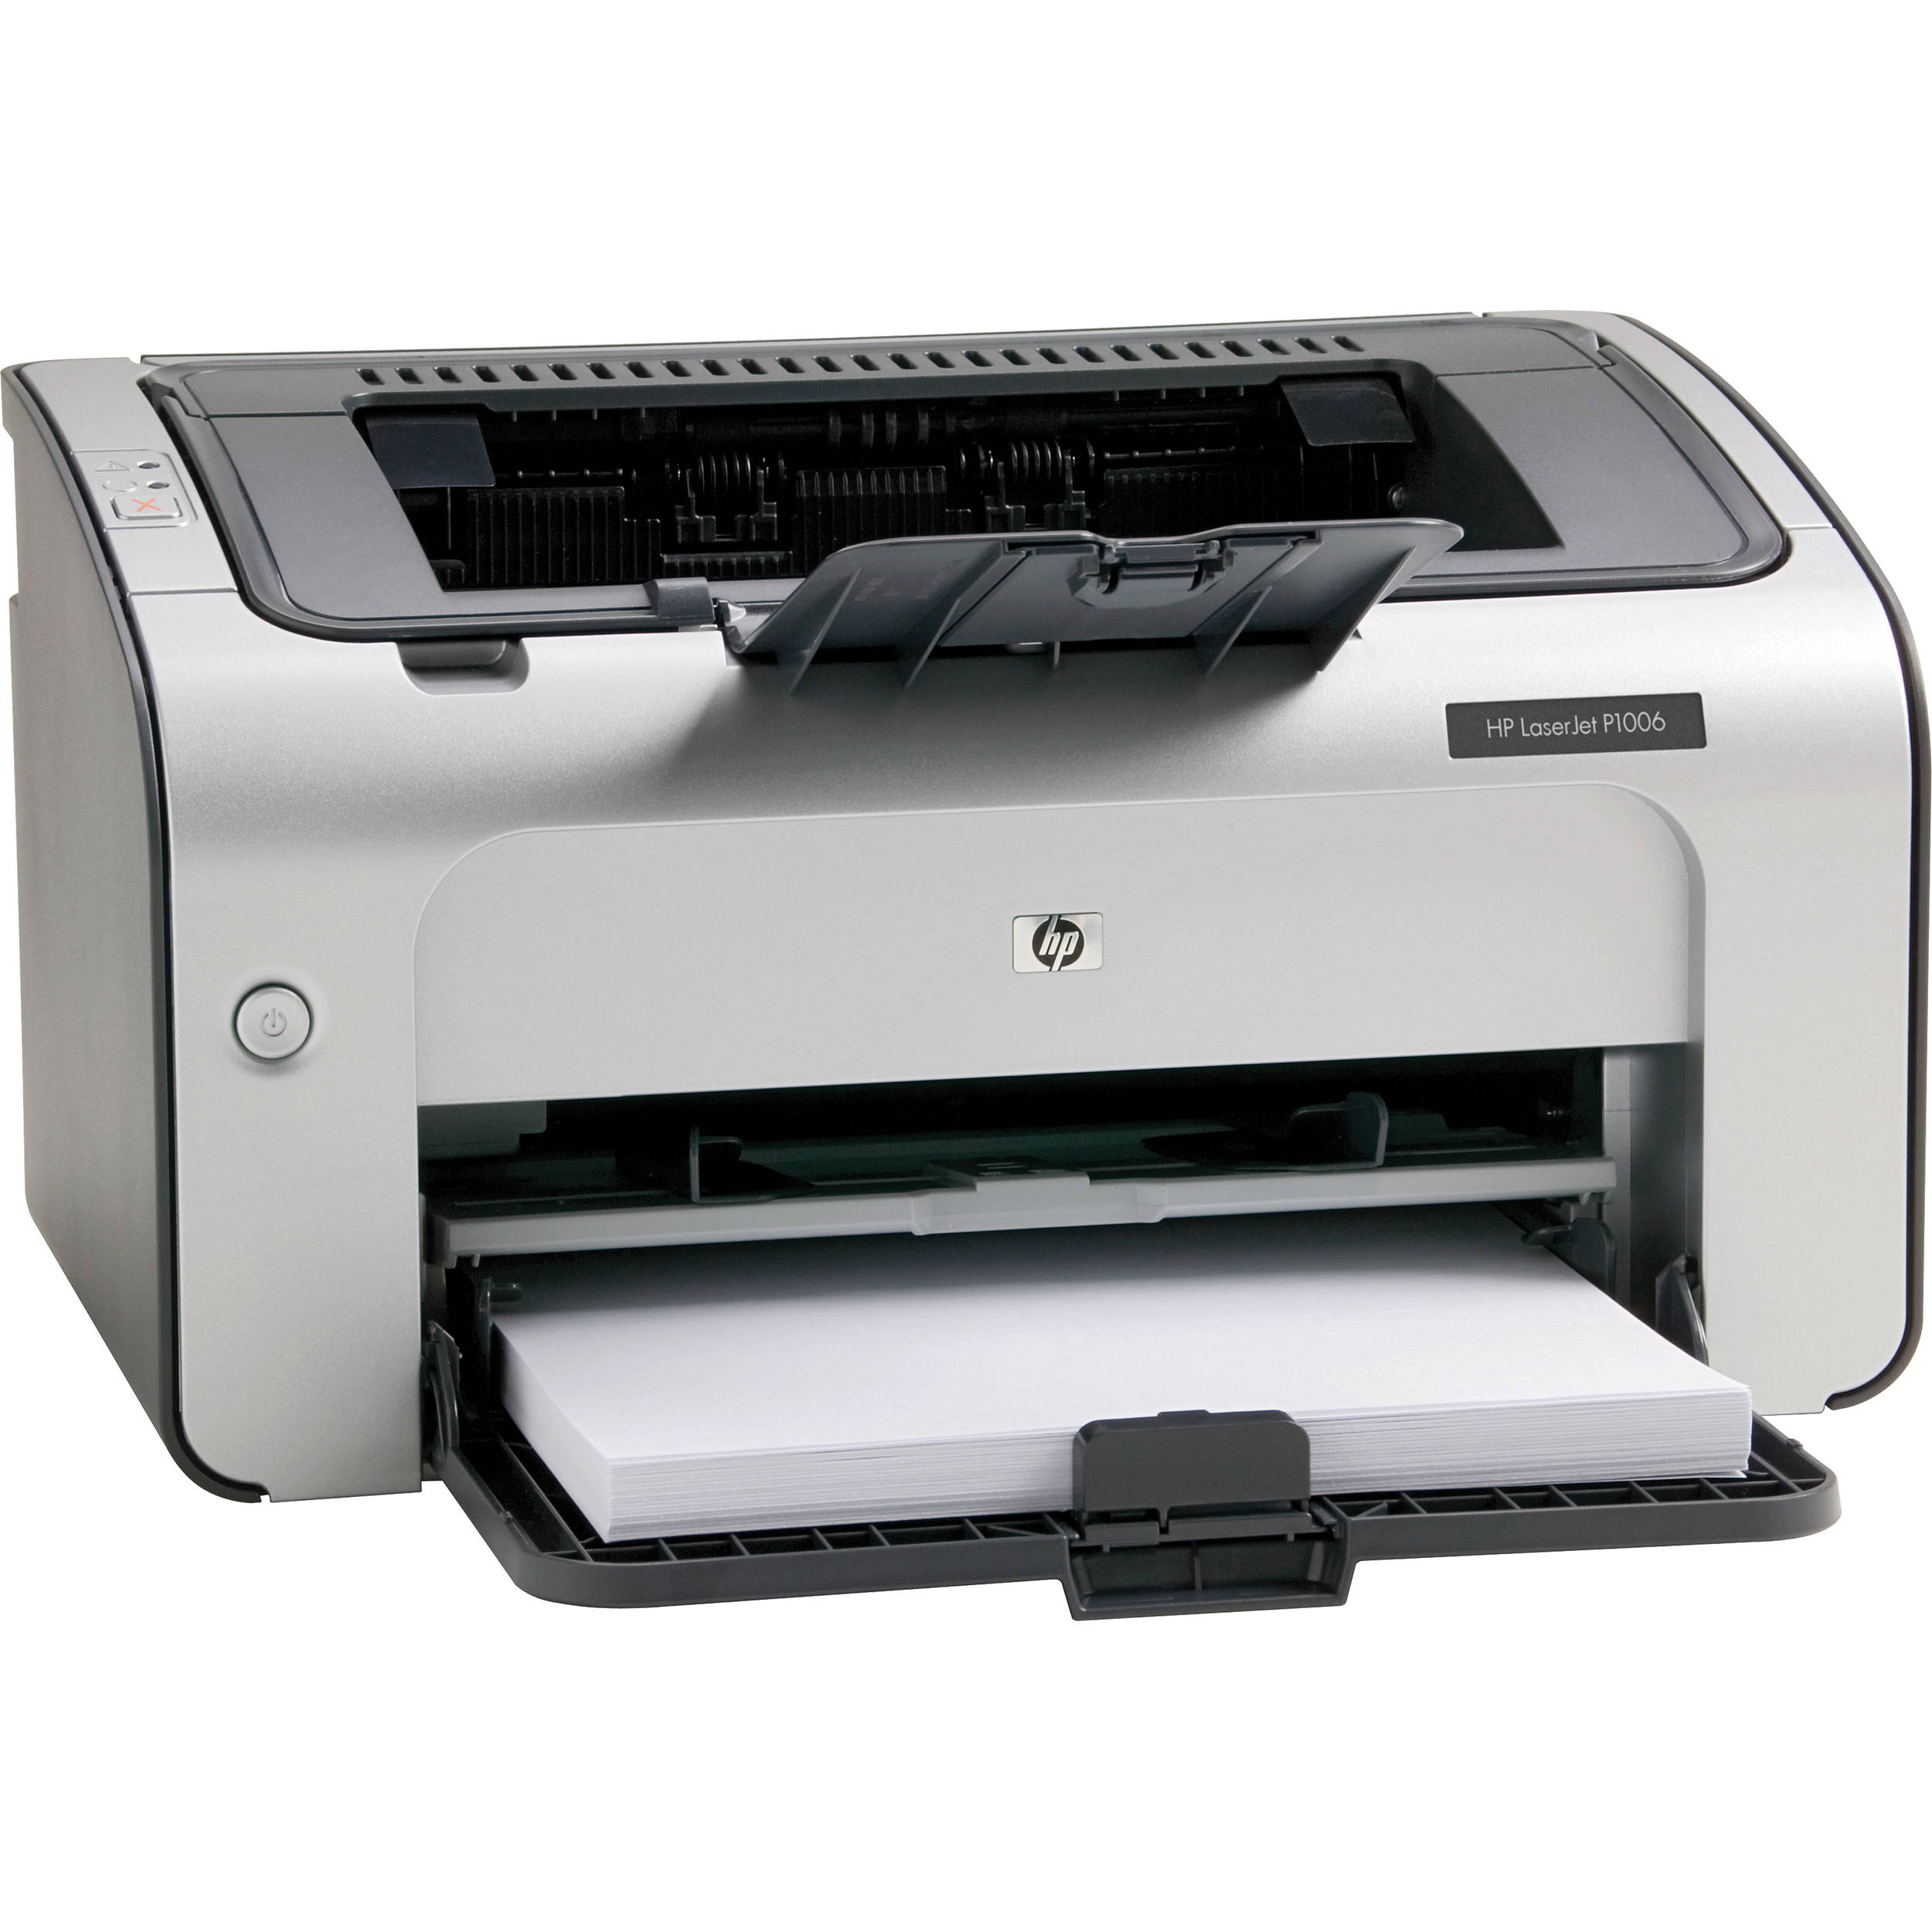 hp cb411a laserjet p1006 printer cb411a aba b h photo video rh bhphotovideo com HP LaserJet P1006 Troubleshooting HP LaserJet P1006 Troubleshooting